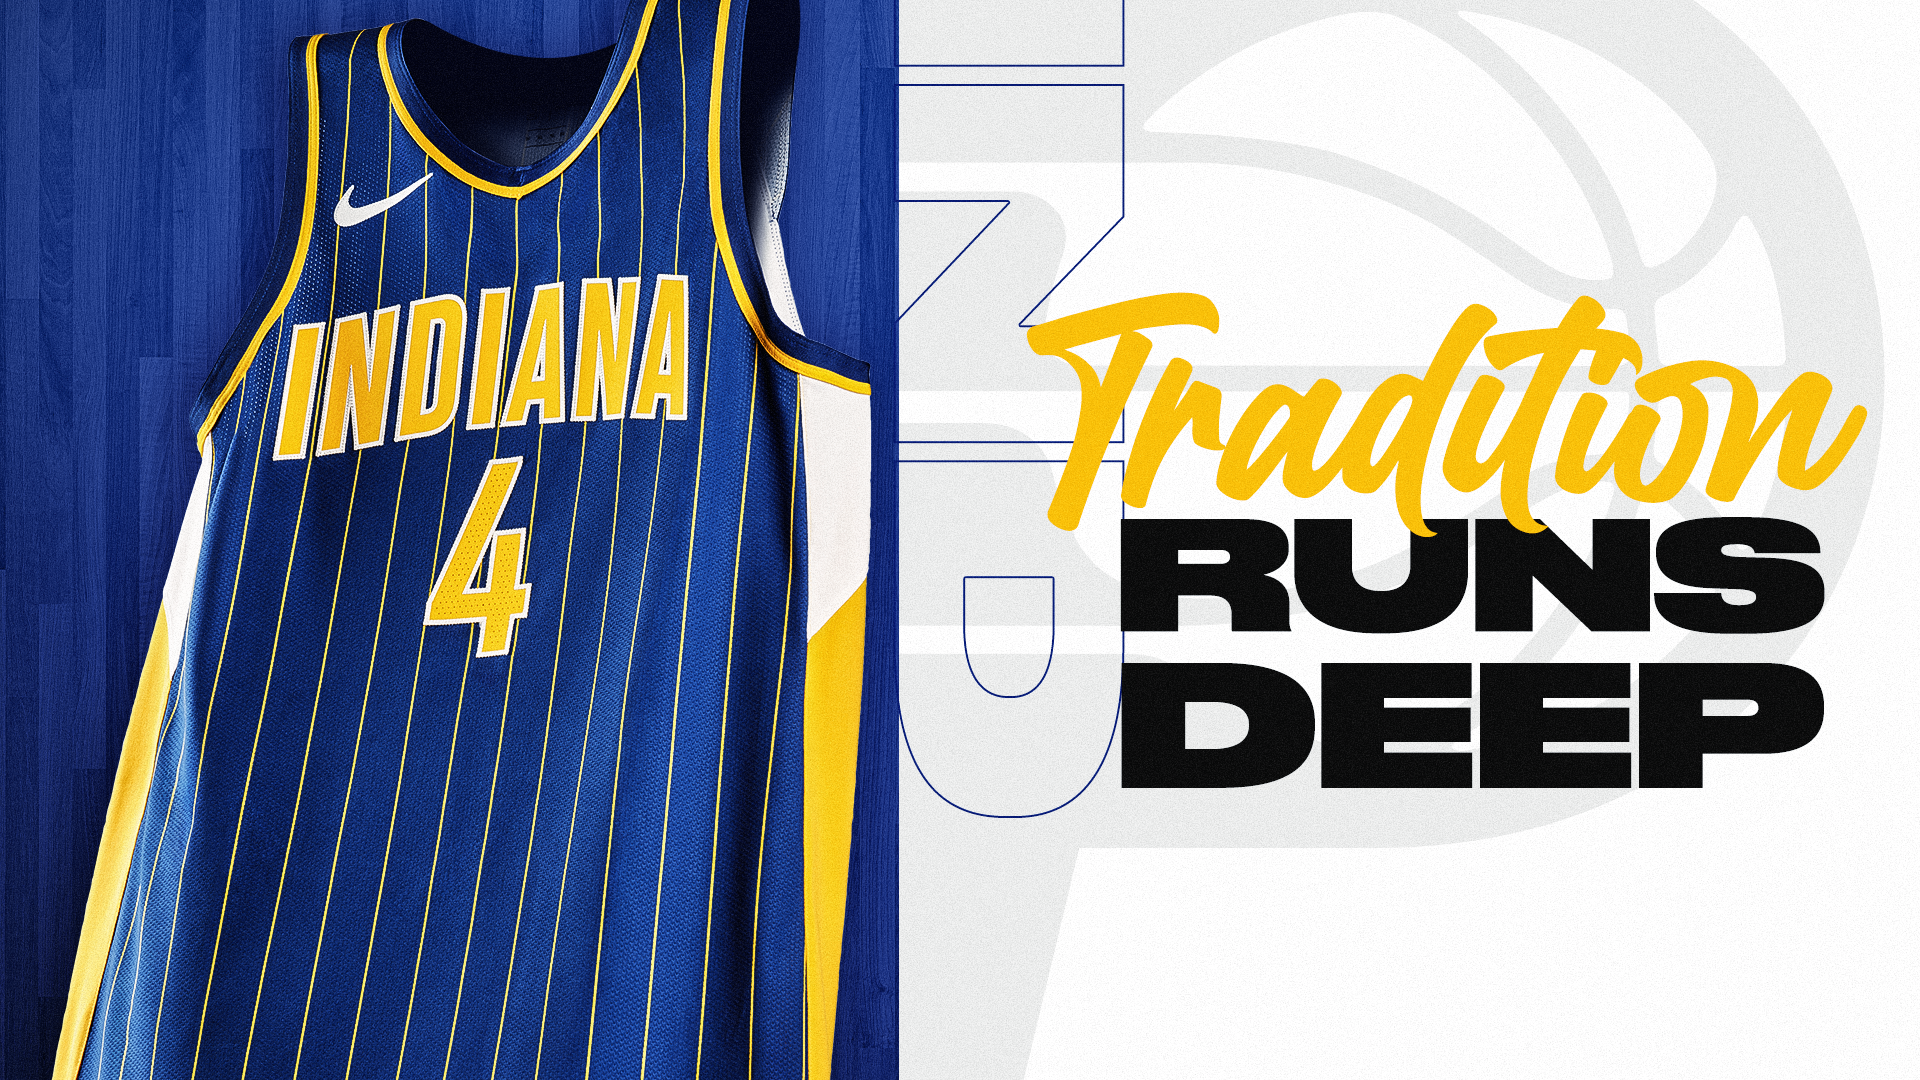 Indiana Pacers: Tradition Runs Deep